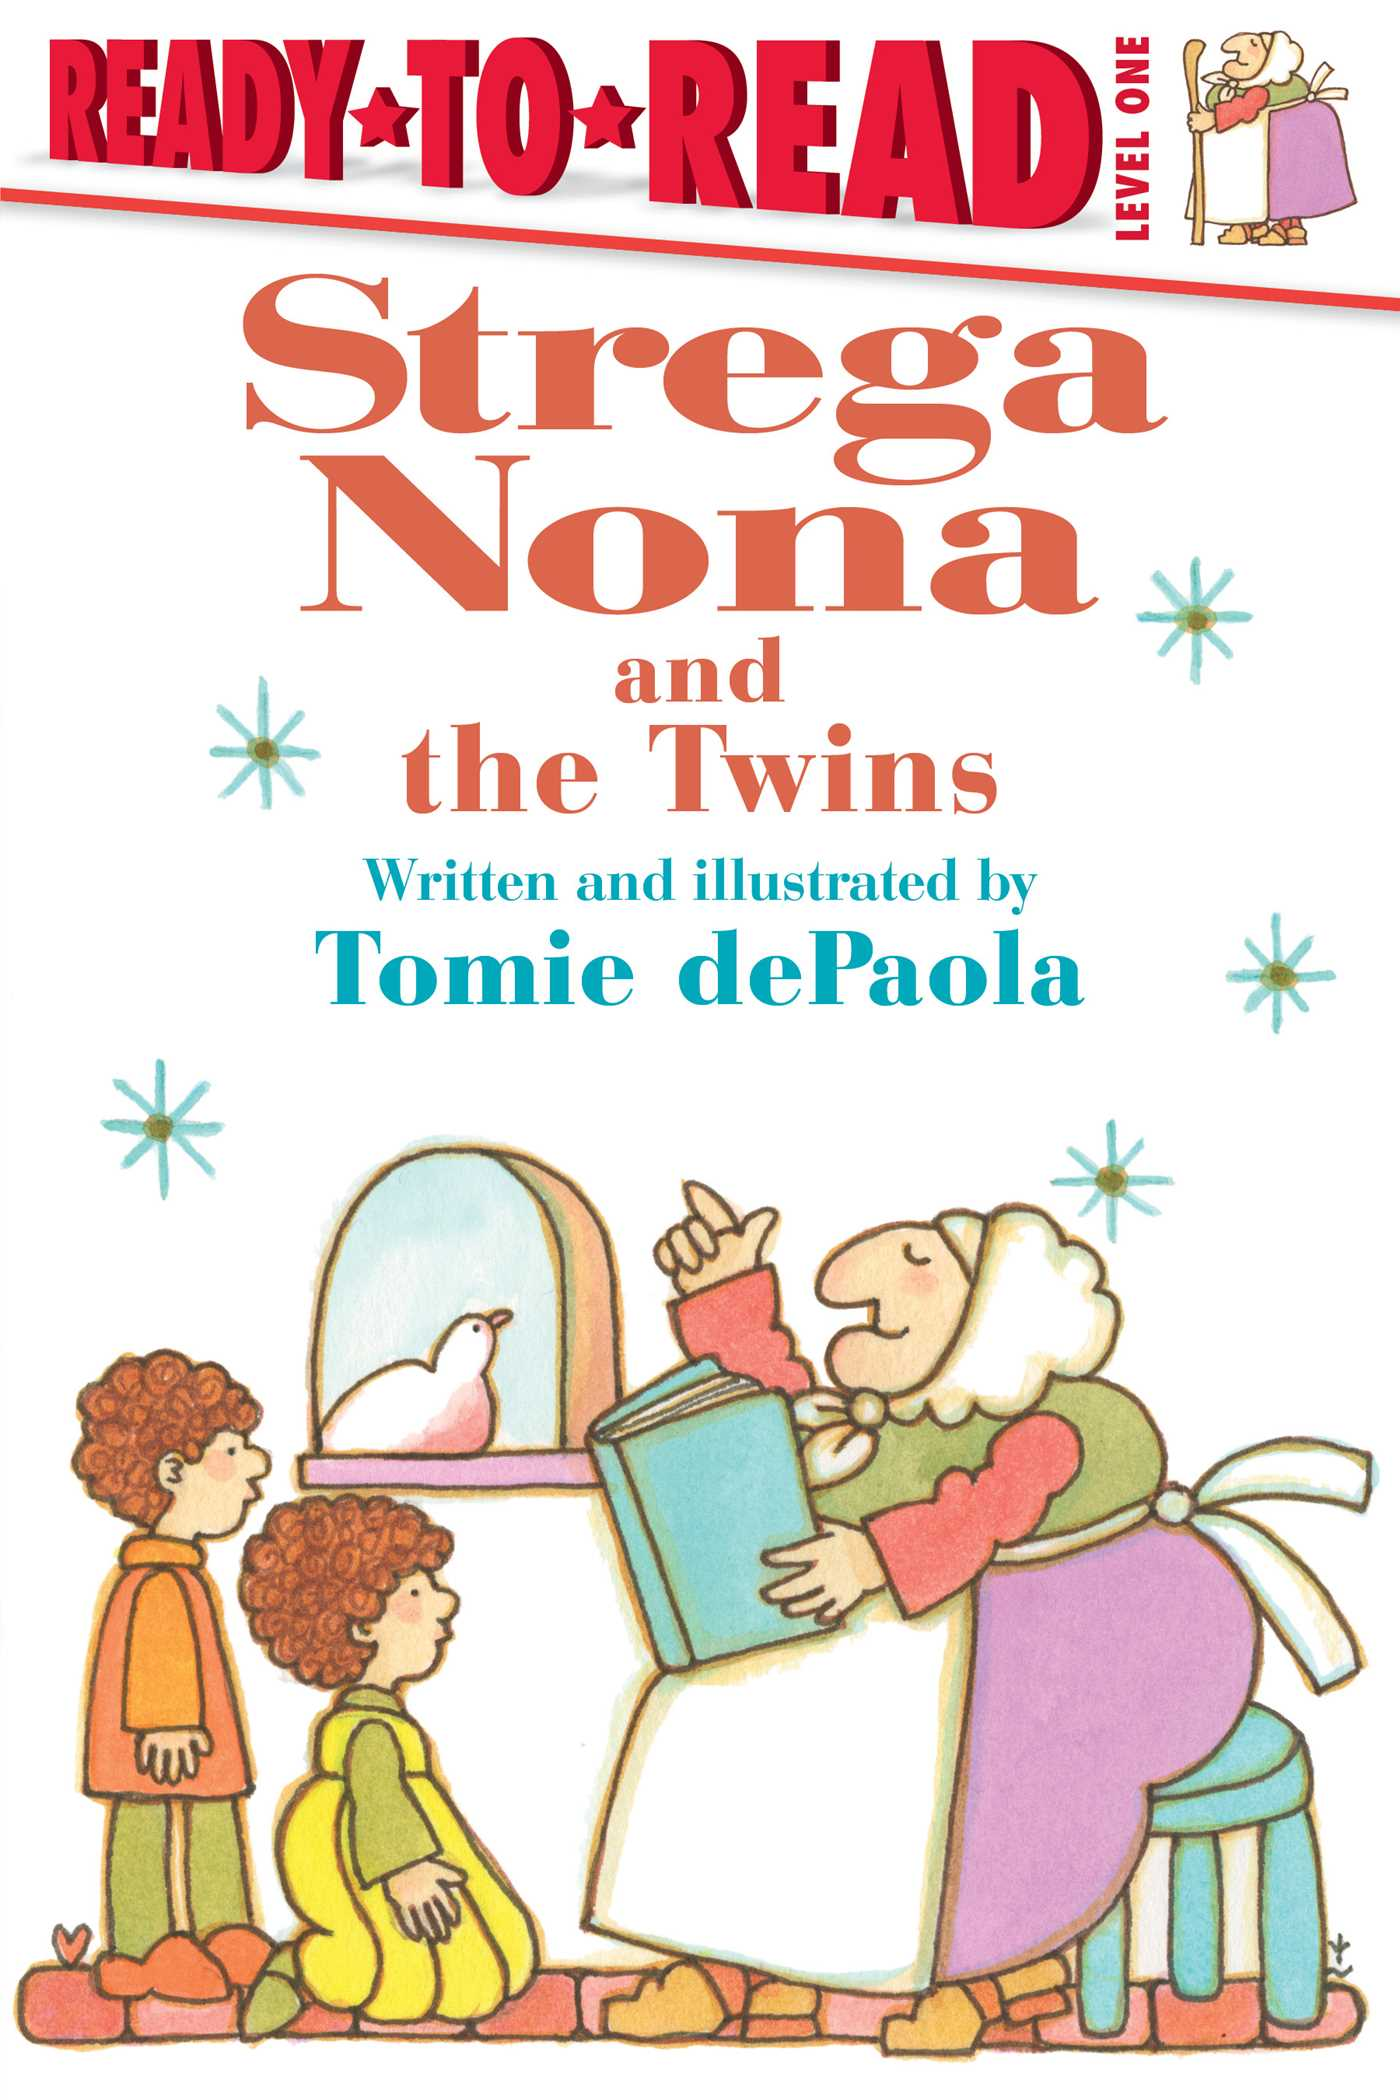 Strega nona and the twins 9781481481373 hr